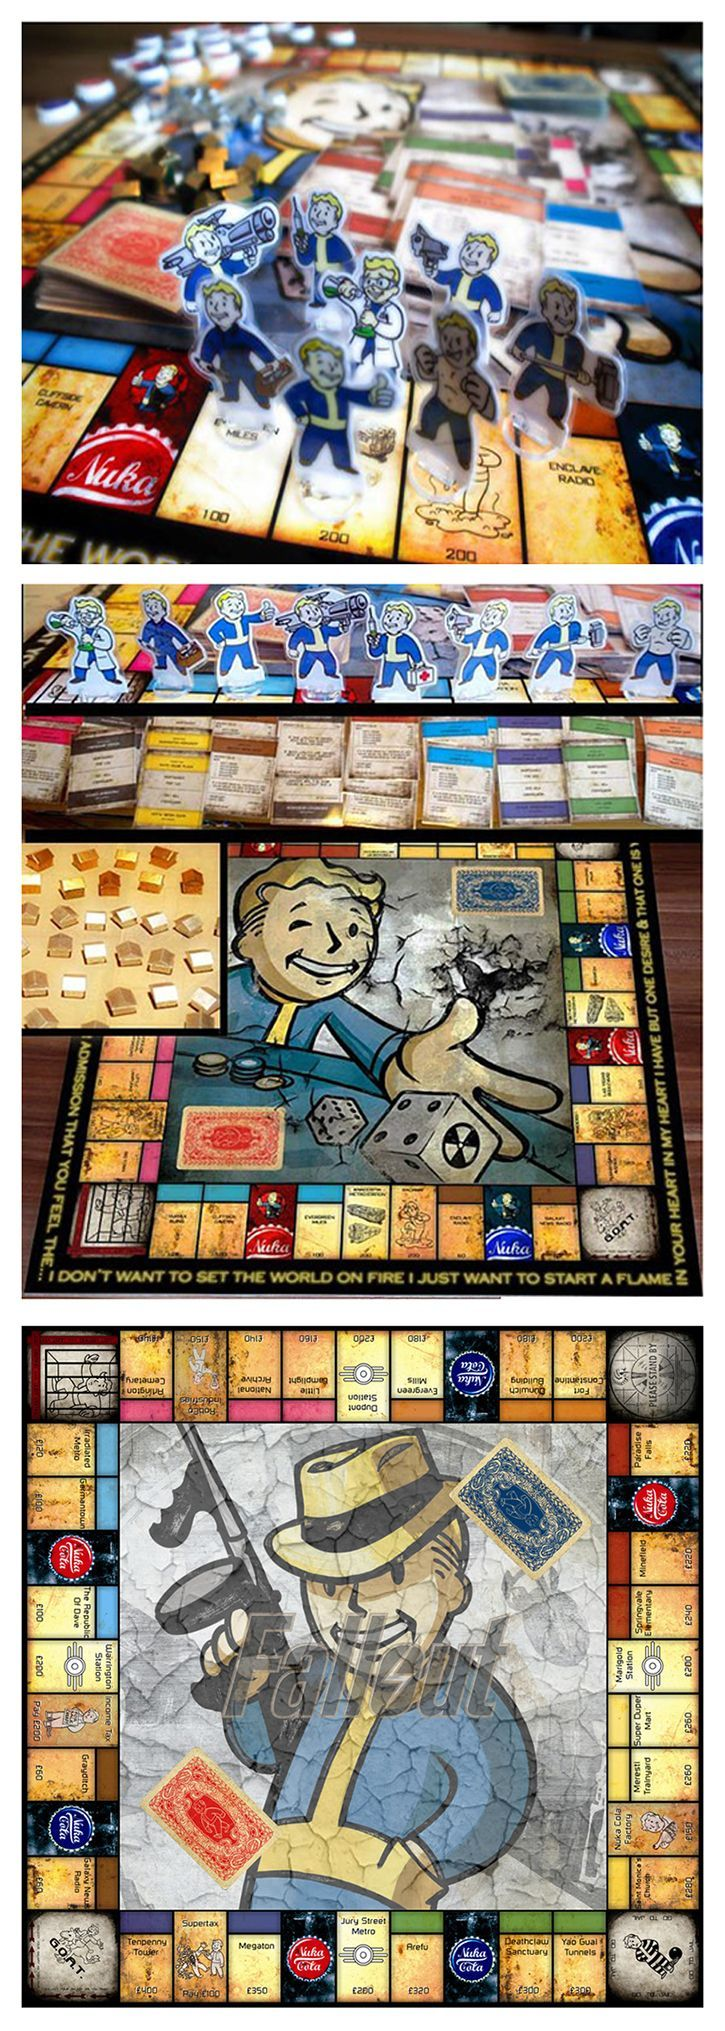 Fallout Monopoly...please let this be real.